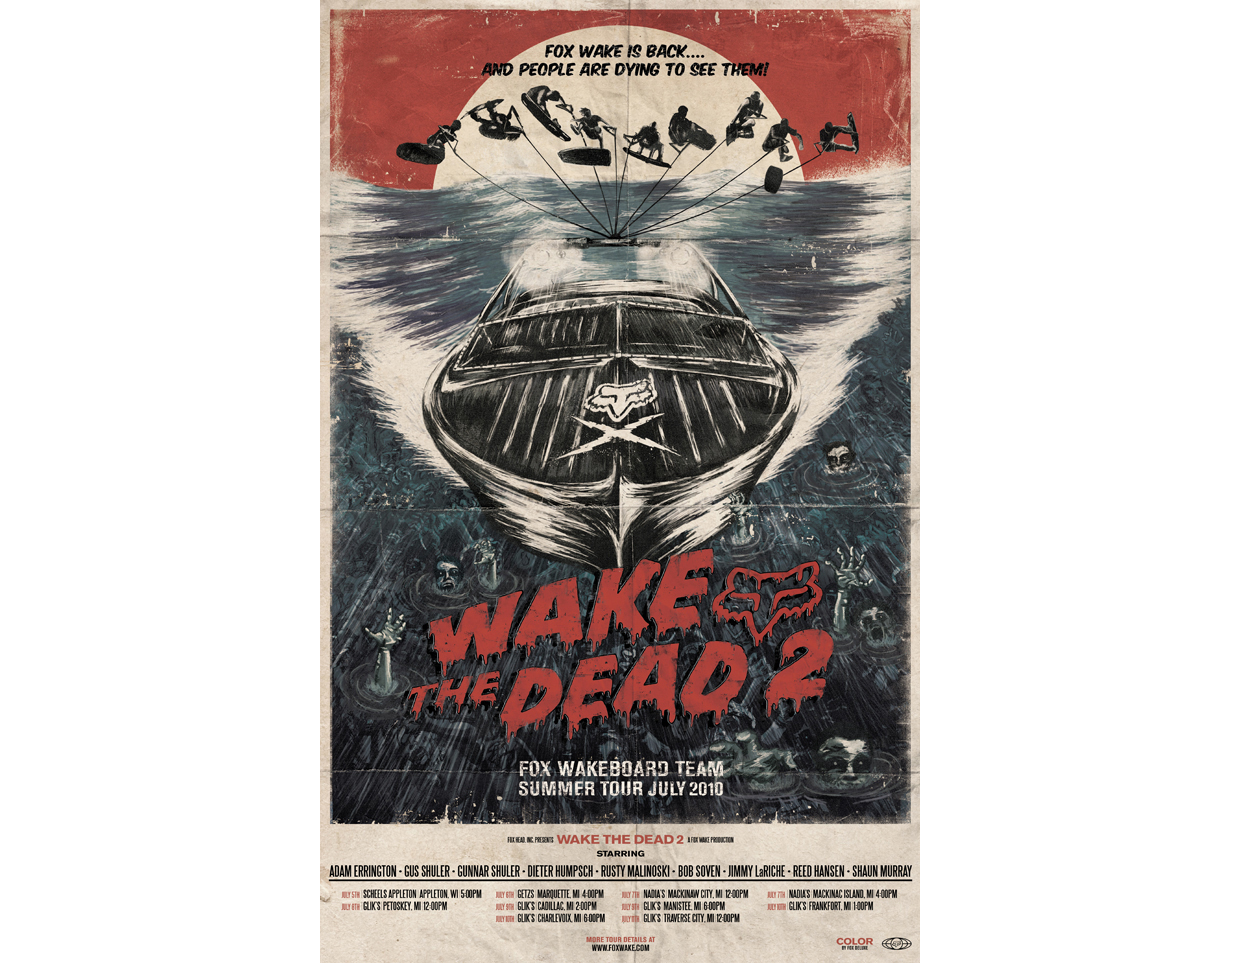 Fox Wake the Dead Poster